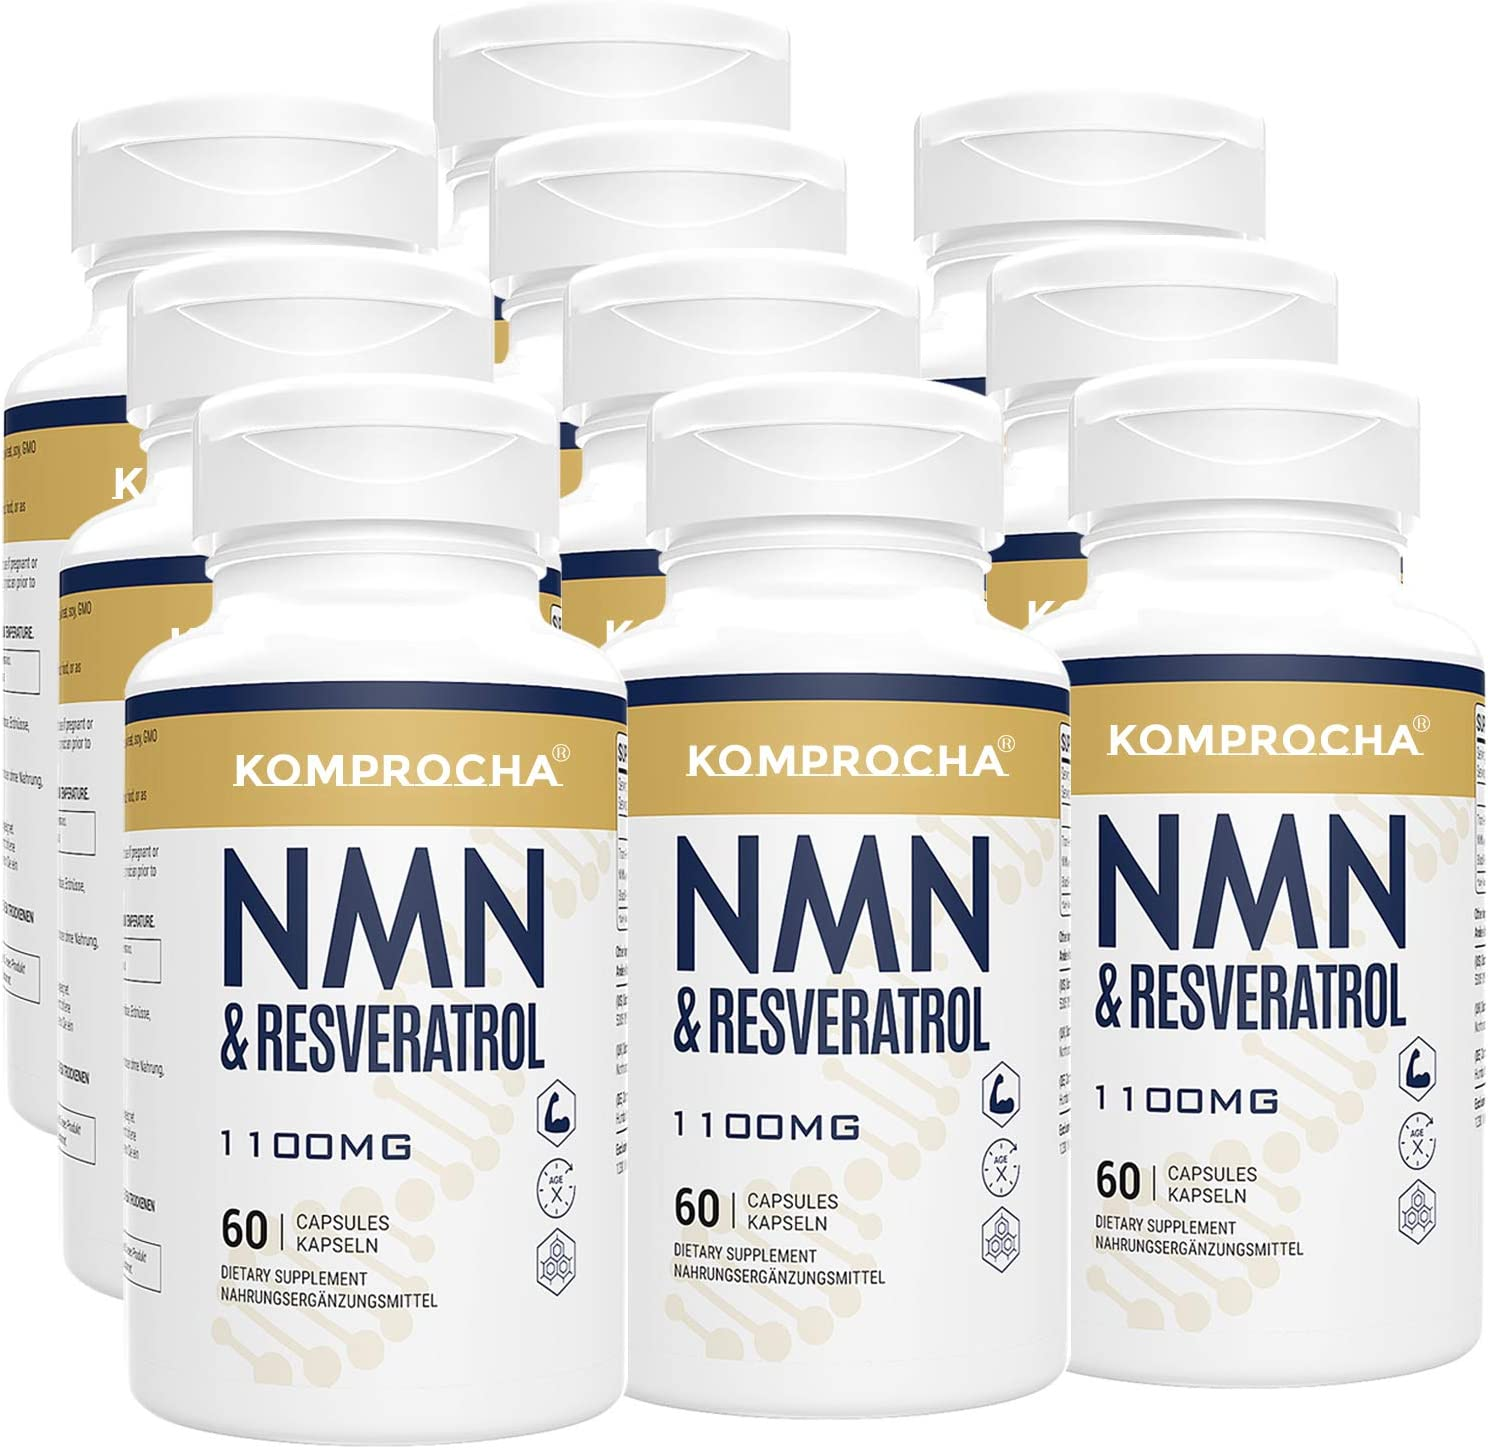 NMN + Trans-Resveratrol 99% Limited time trial price Purity+ 1100mg Max Pepper Black for Miami Mall